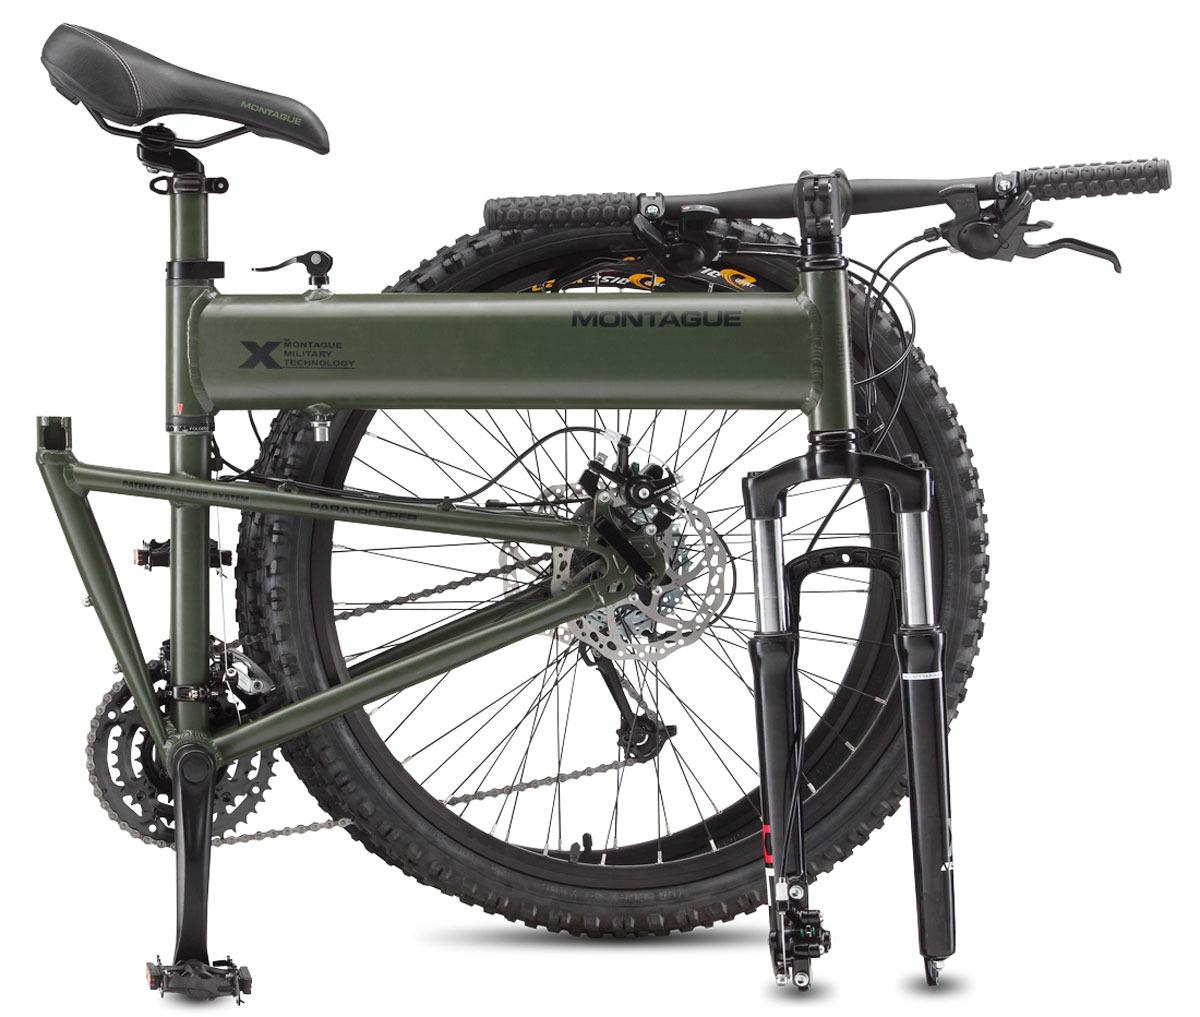 Montague paratrooper folding bike extravaganzi for The montague